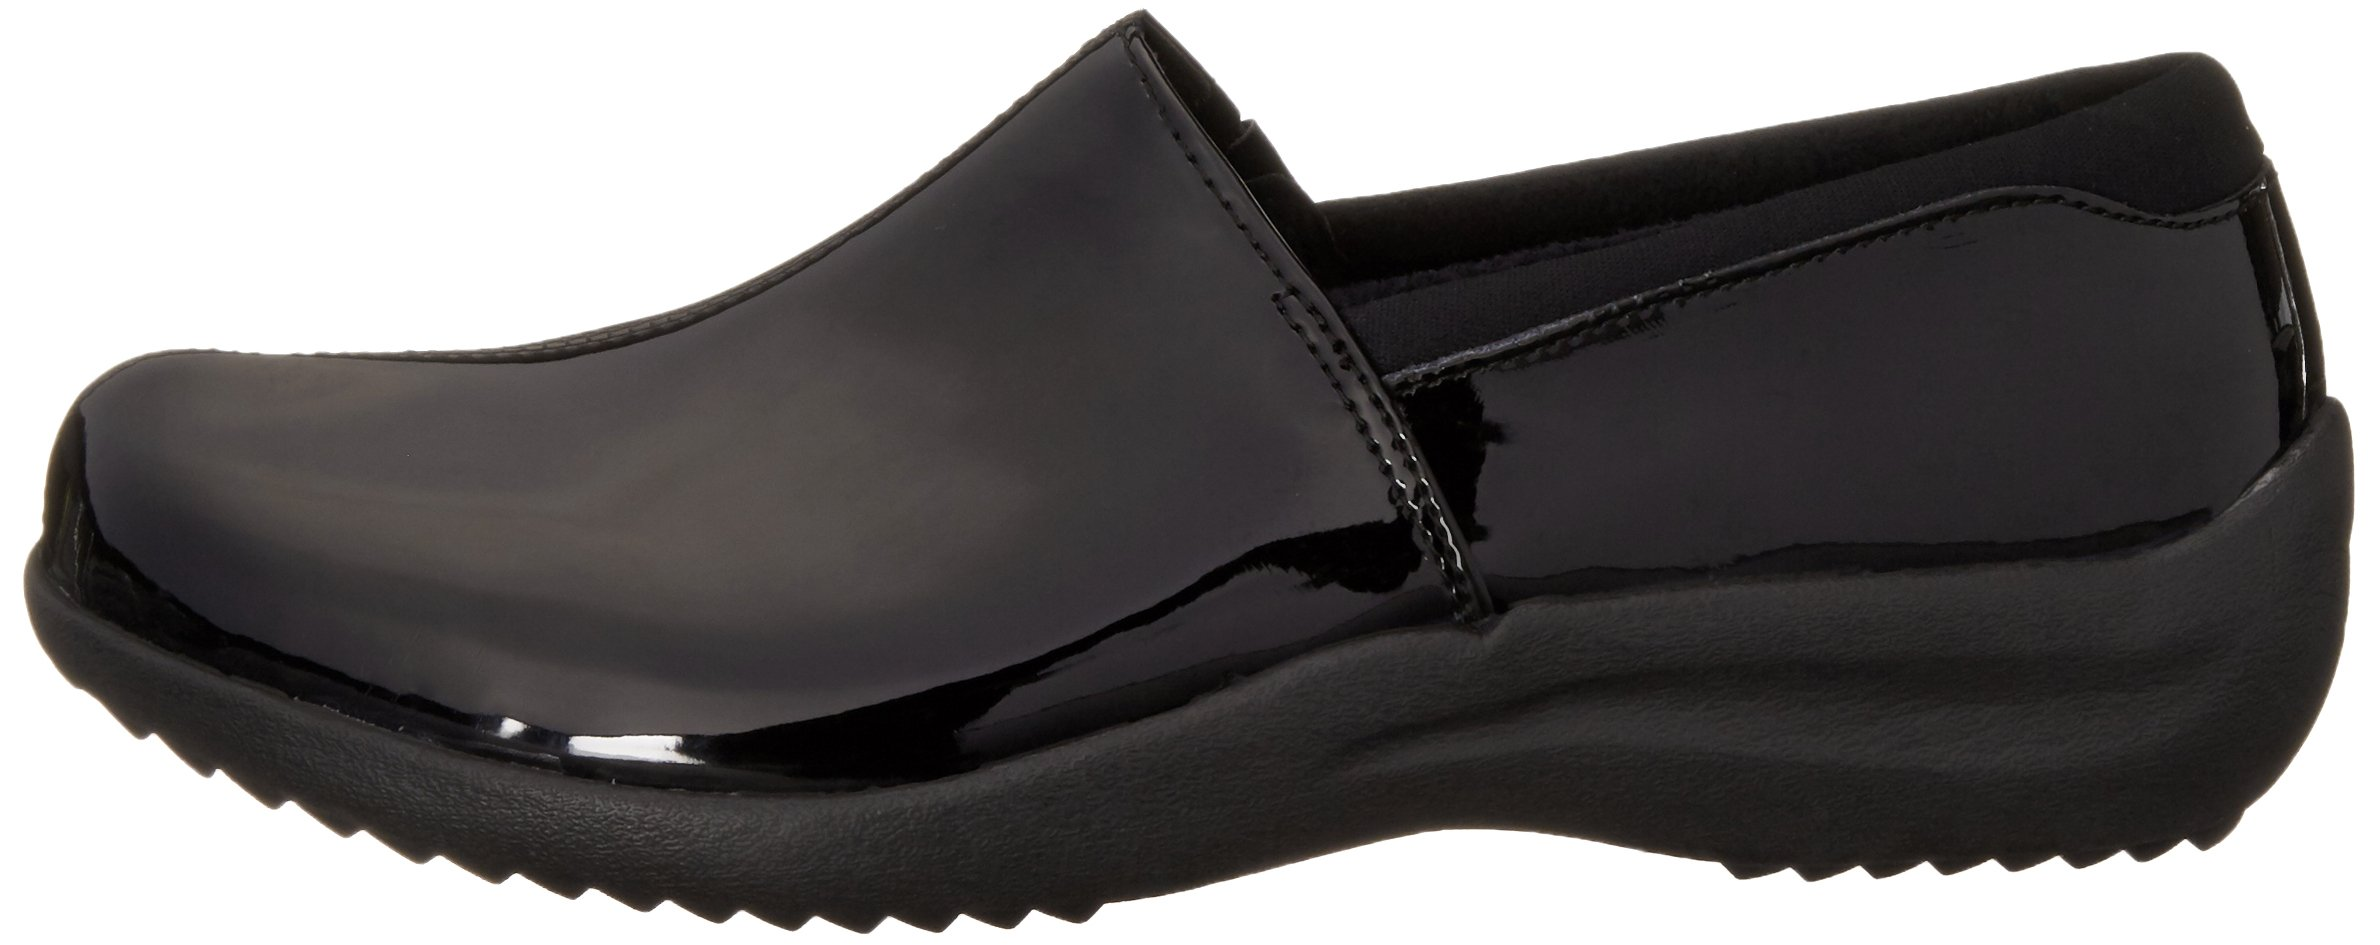 Skechers Women's Savor singular Mule, Black Patent Leather, 6 M US by Skechers (Image #5)